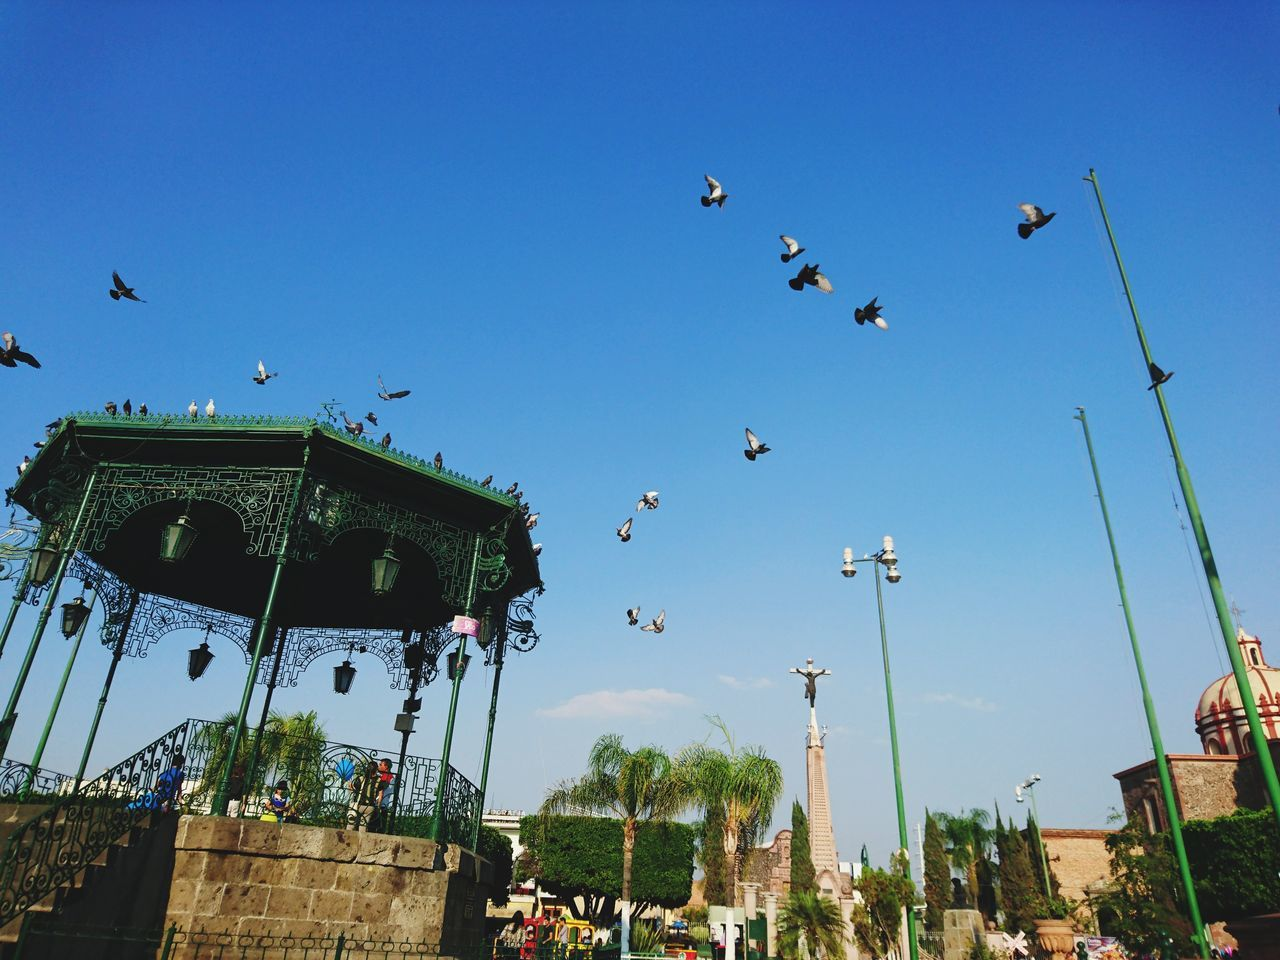 Flying Speed Sky Kiosk Pigeons Everywhere Pigeons In Flight Pigeonslife Animals In The Wild Large Group Of Animals Animal Themes Xperia Z5 Xperiaphotography XPERIA Sony Xperia Pigeons Birds XperiaZ5 Day Pigeon Bird  EyeEmNewHere BYOPaper!